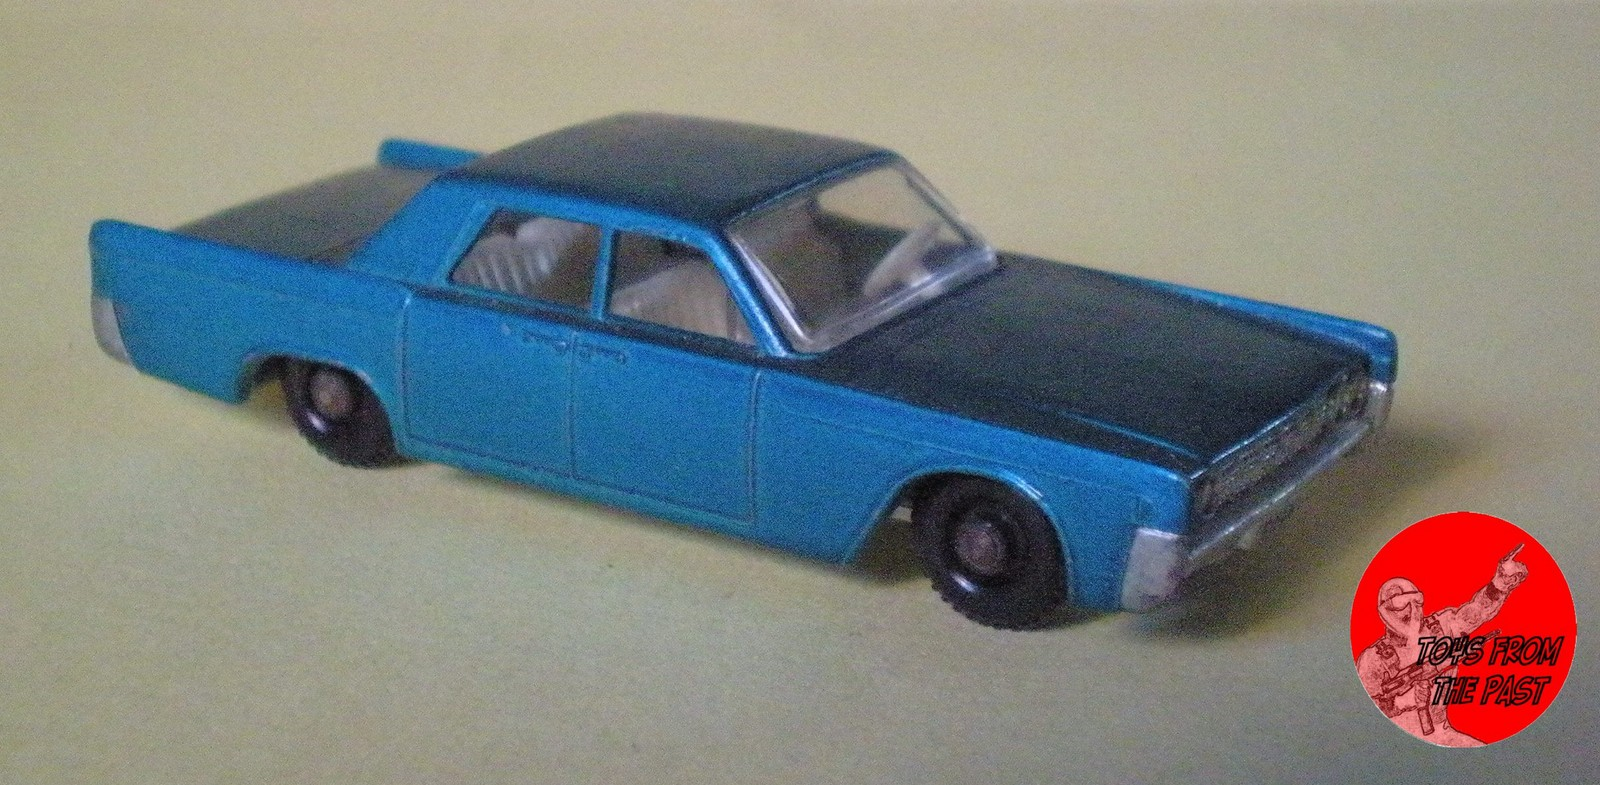 Matchbox Cars Sold At Obriens Auto Parts